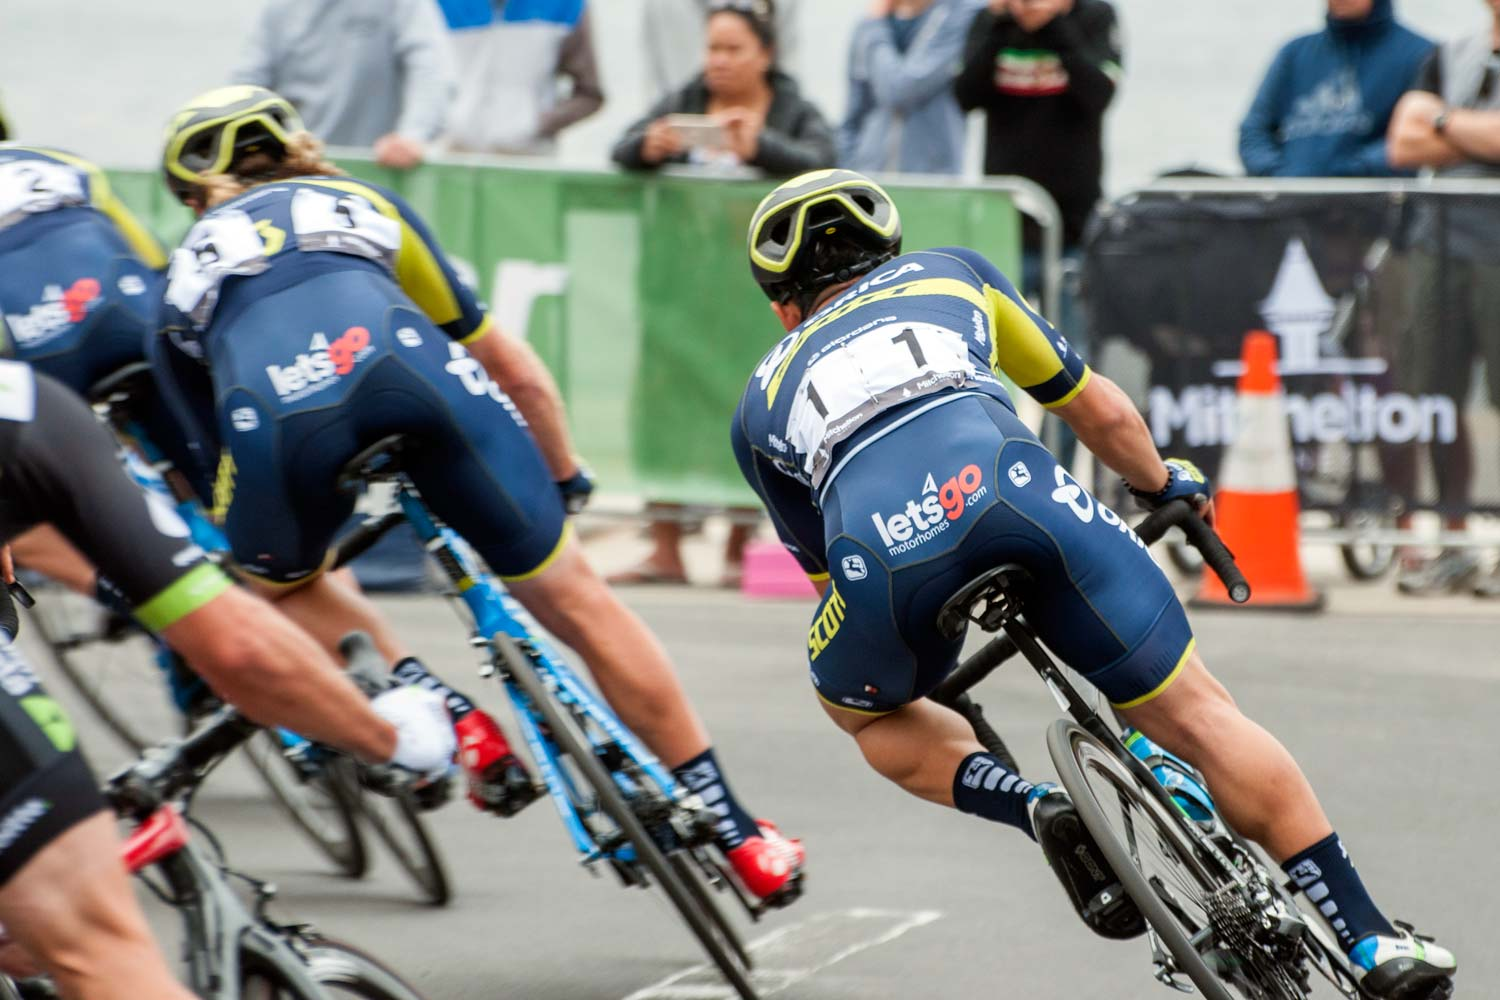 Caleb Ewan leans into a corner in Geelong. He'd later crash, while in the lead, on the final turn. Photo: Jean-Pierre Ronco